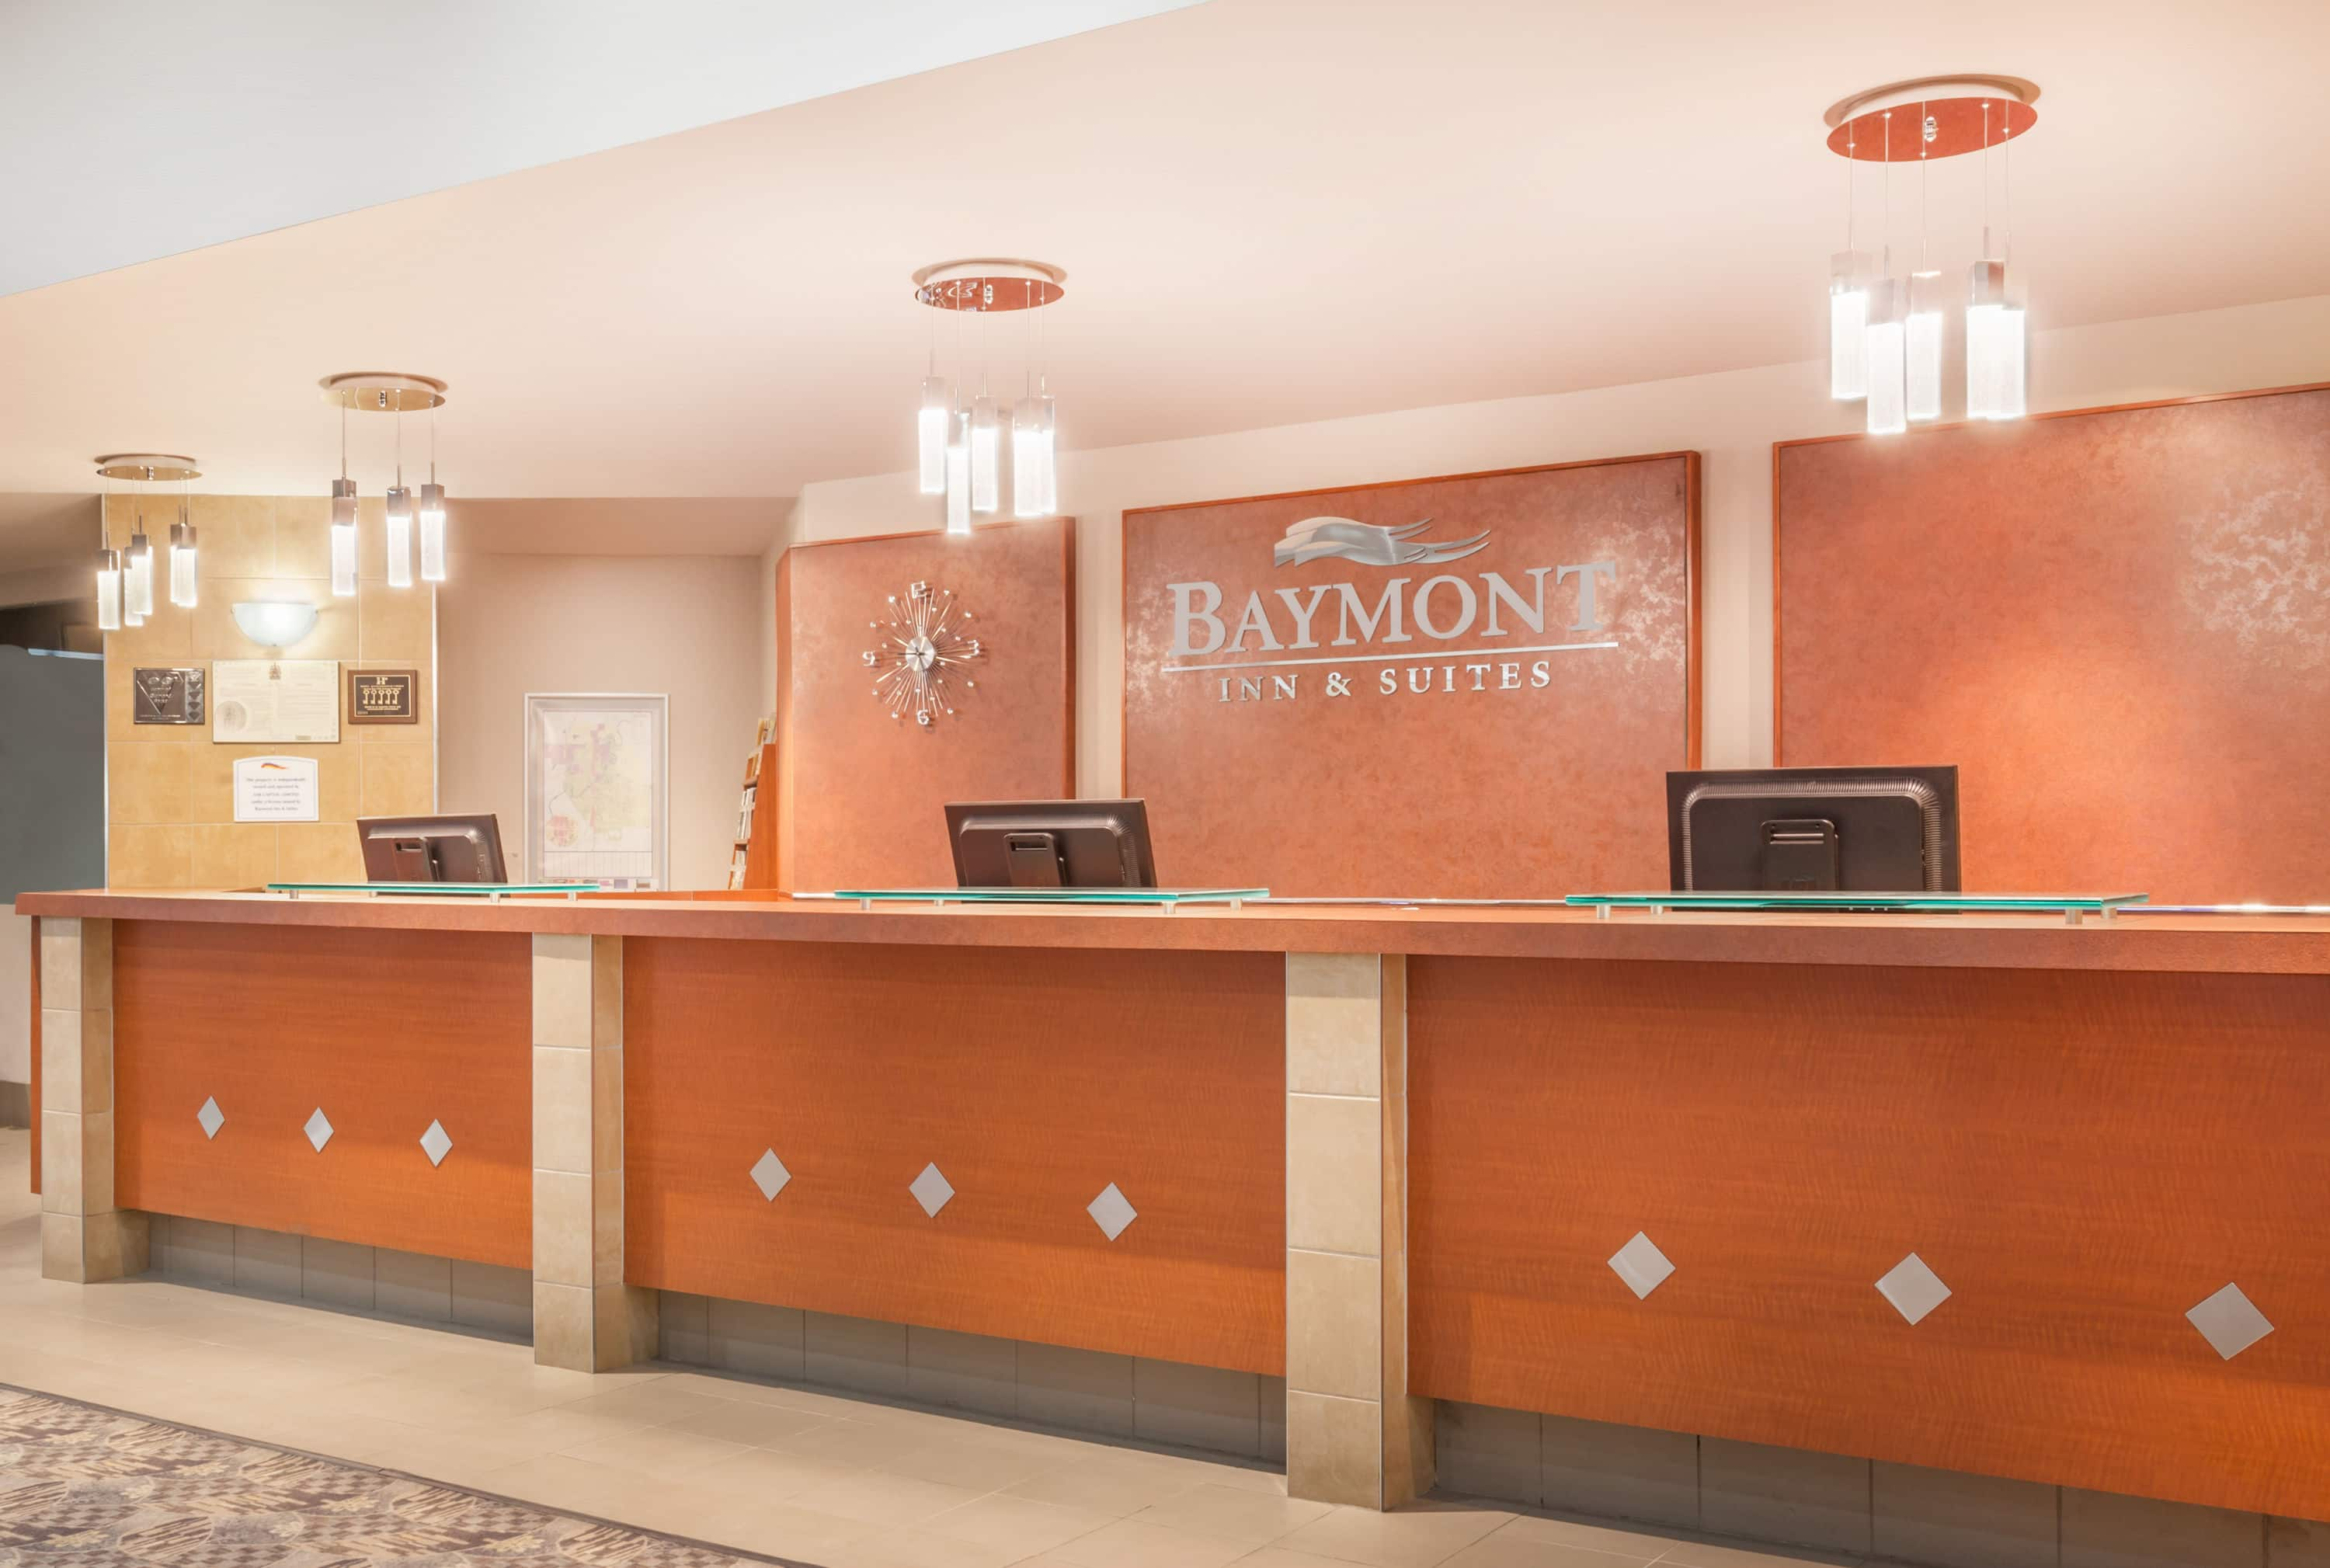 Furniture stores in red deer ab - Excellent Baymont Inn U Suites Red Deer Hotel Lobby In Red Deer Alberta With Furniture Stores Red Deer Alberta